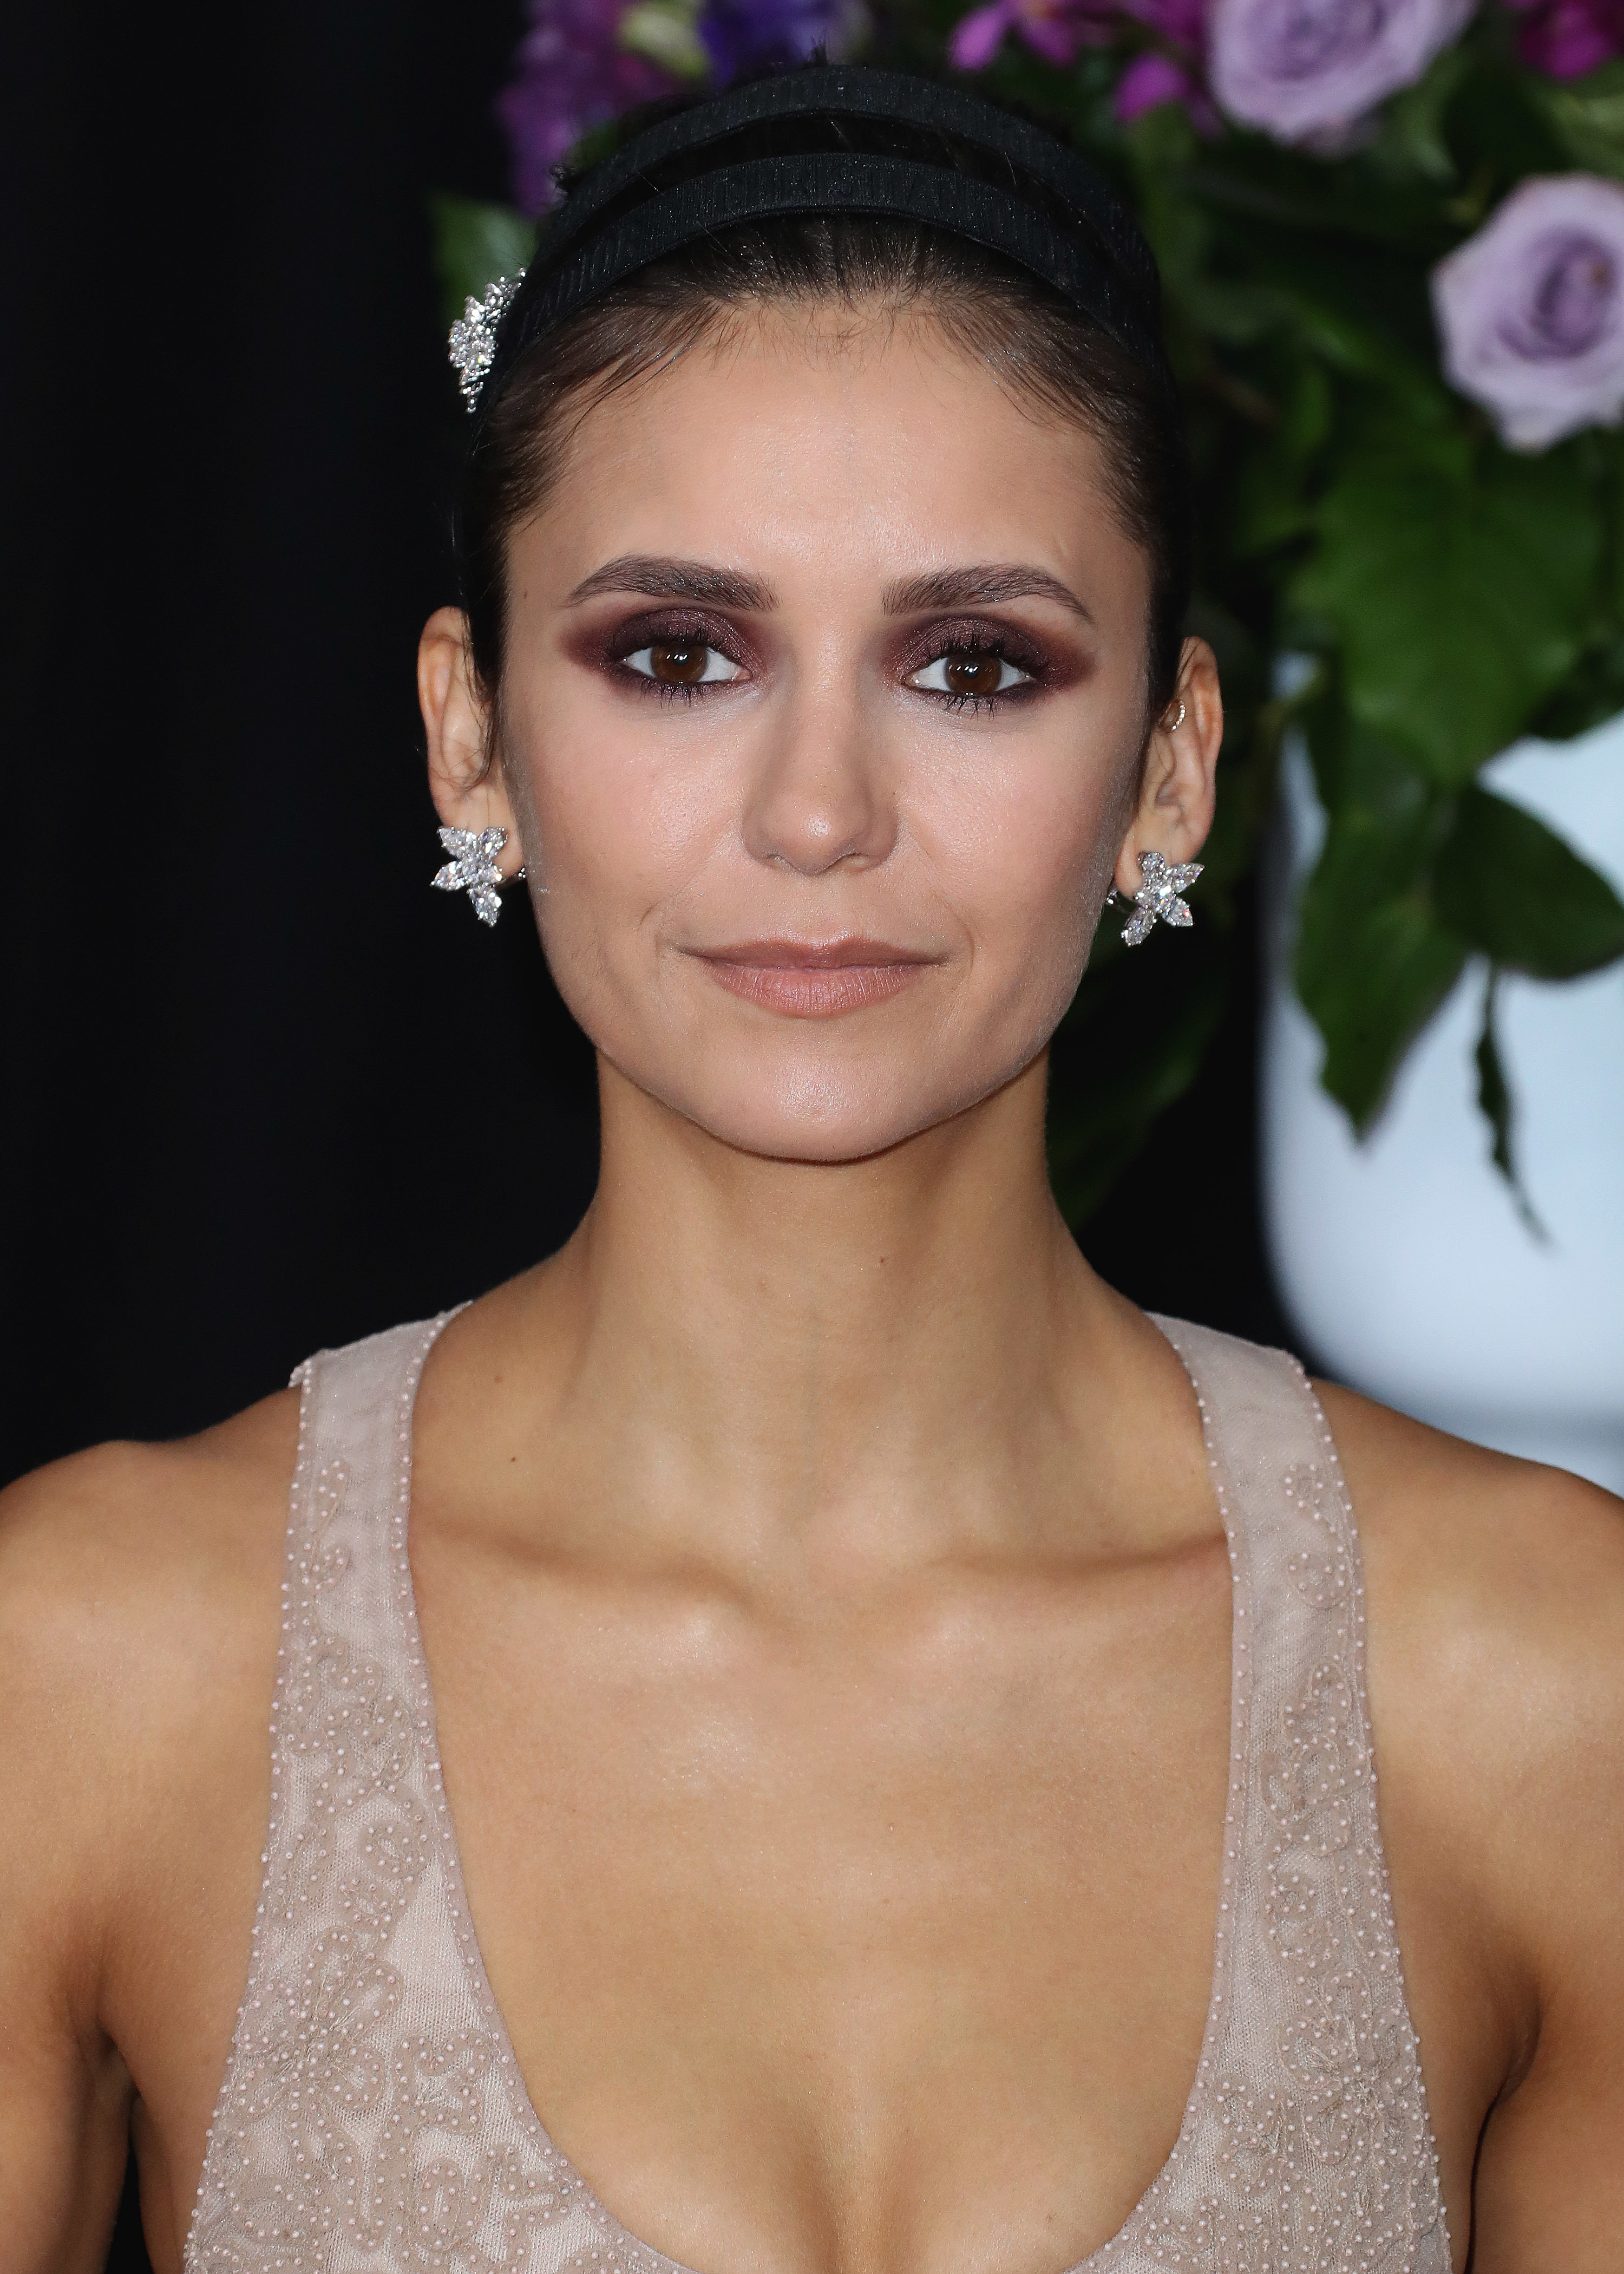 Nina Dobrev attends the 61st Annual Grammy Awards in Los Angeles on Feb. 10, 2019.